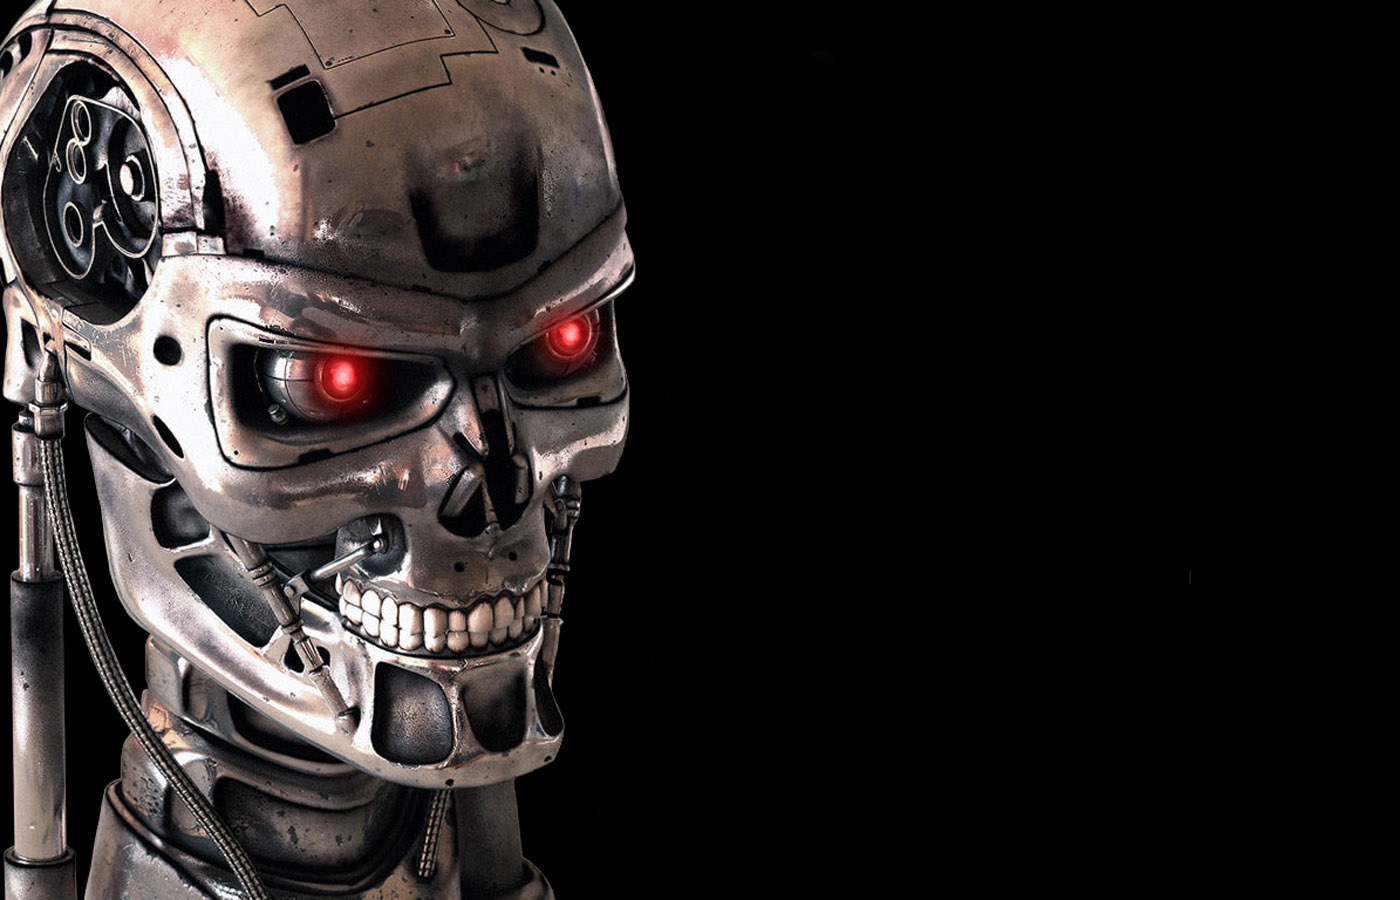 28 Fresh Terminator Wallpapers CYC48 High Resolution Wallpapers 1400x900